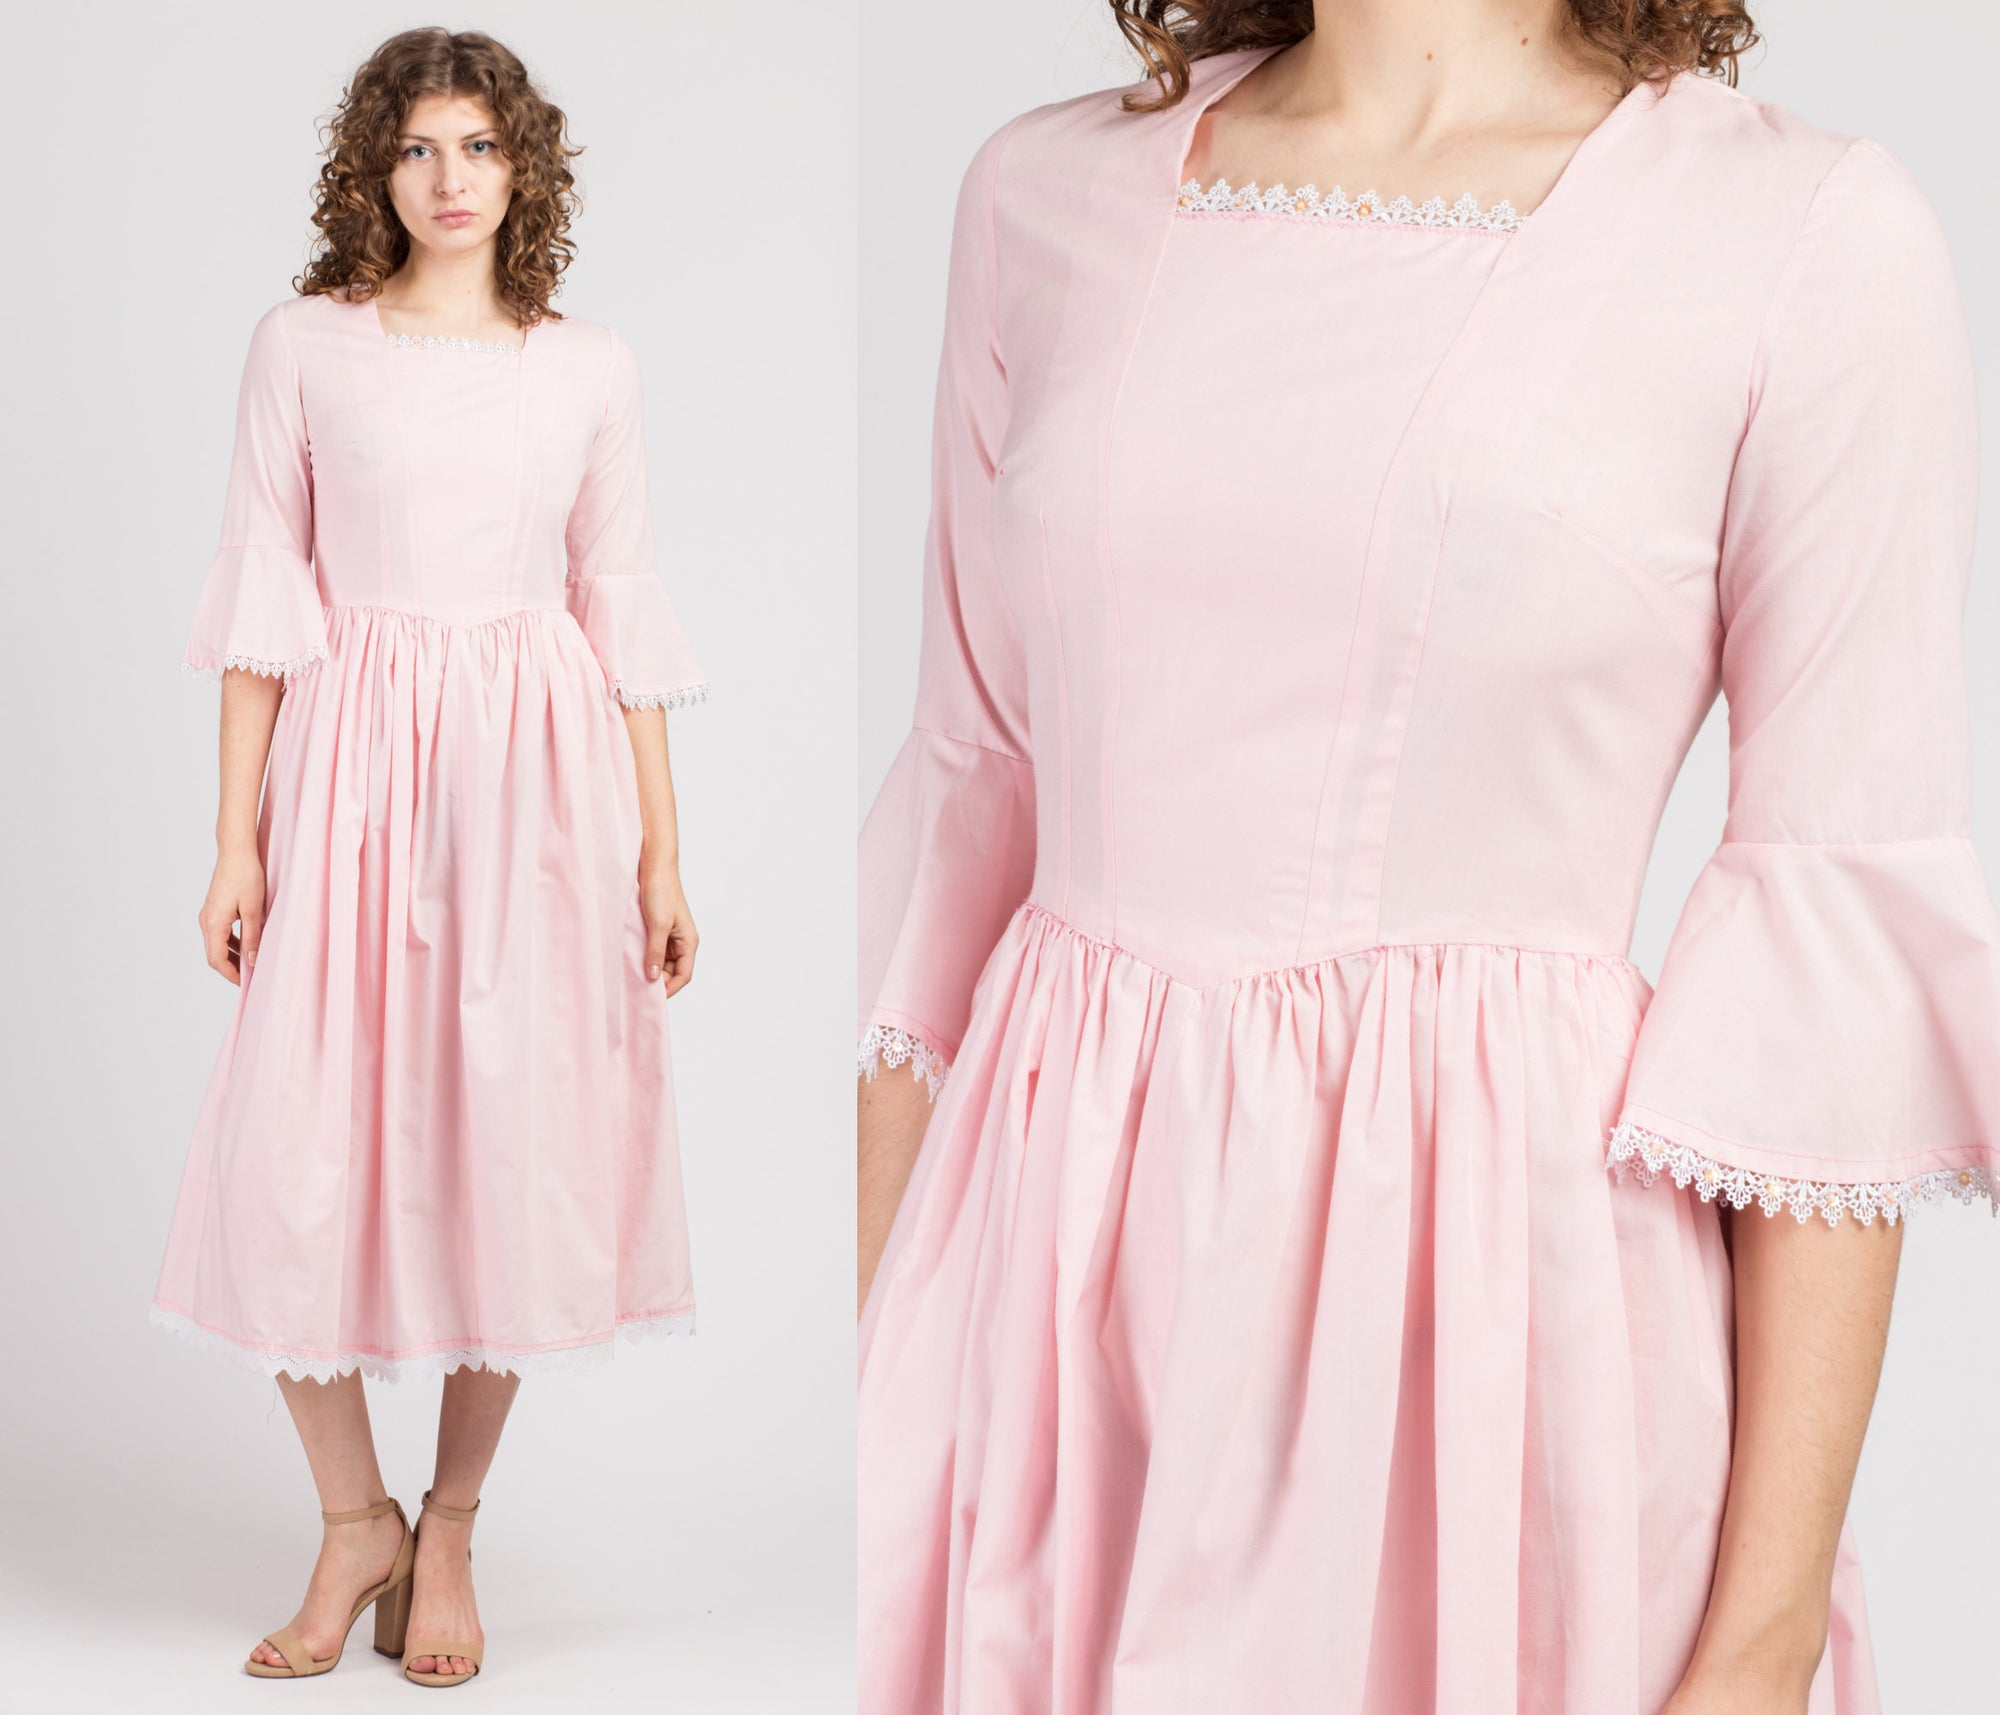 70s Baby Pink Bell Sleeve Midi Dress - Small